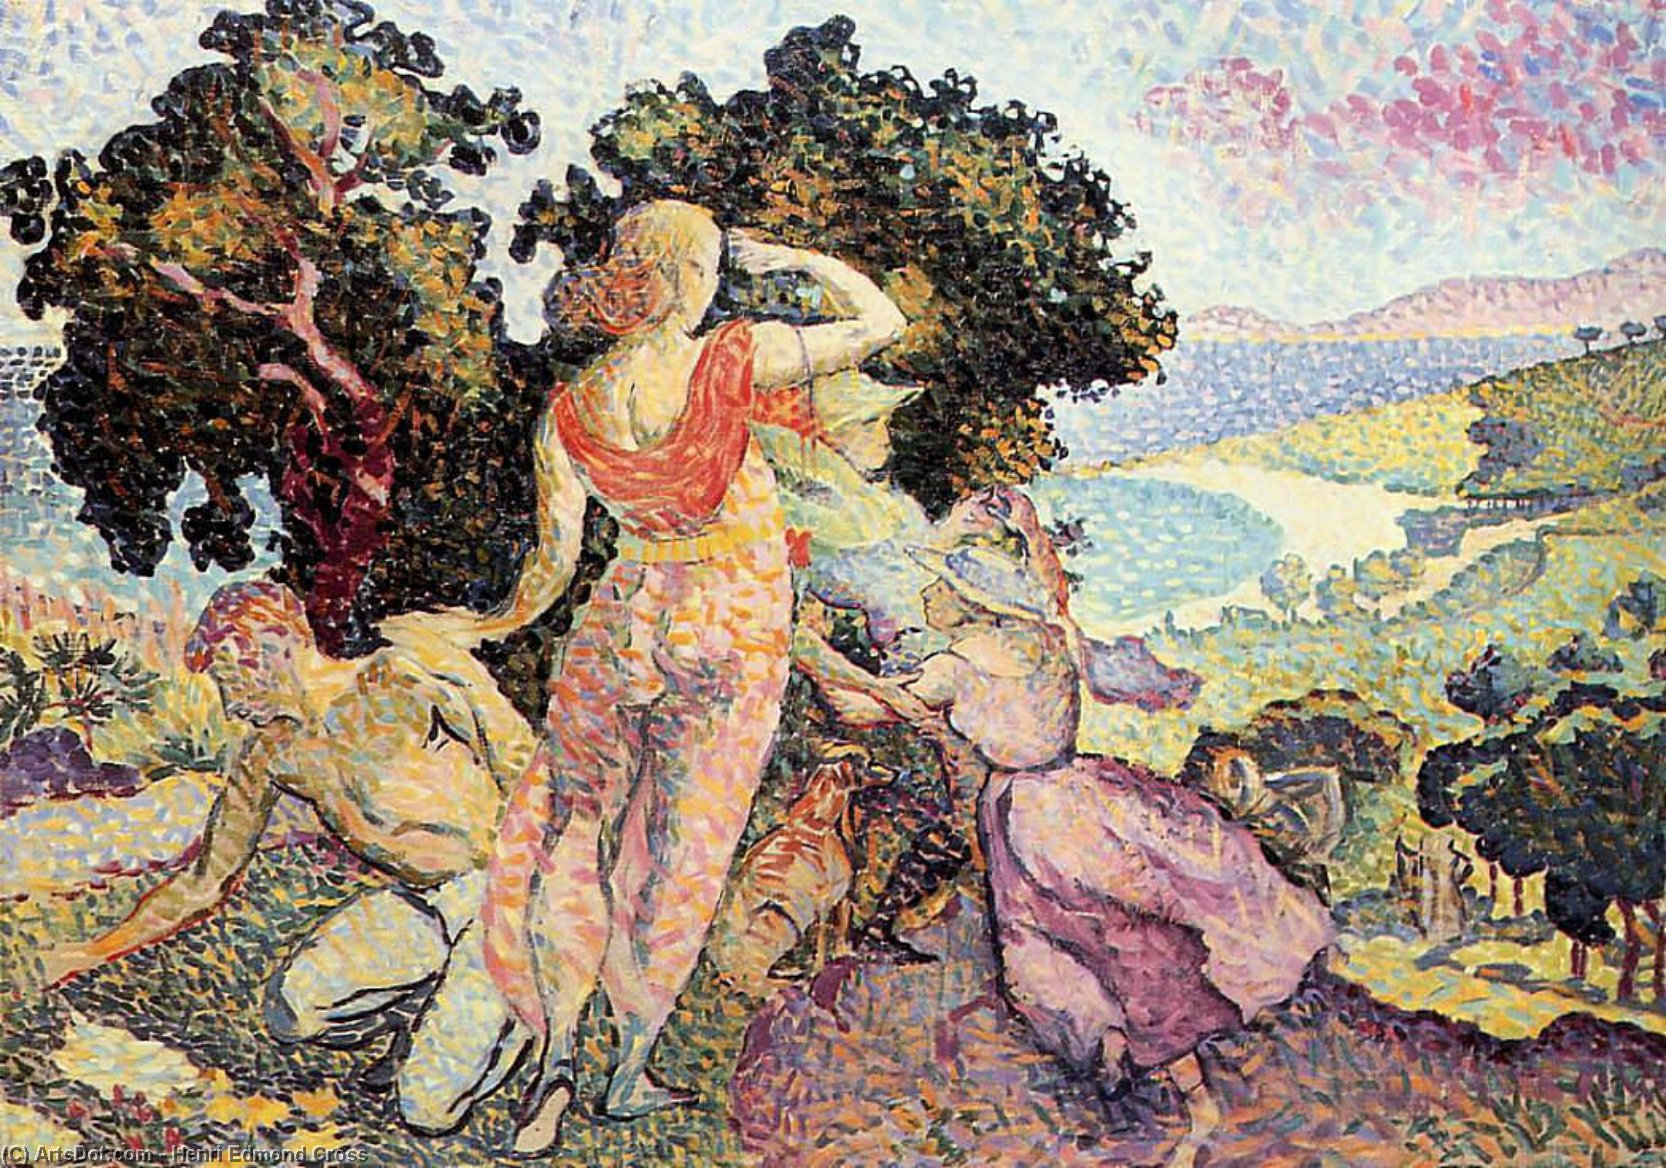 Estudio para Excuirsion, óleo sobre lienzo de Henri Edmond Cross (1856-1910, France)